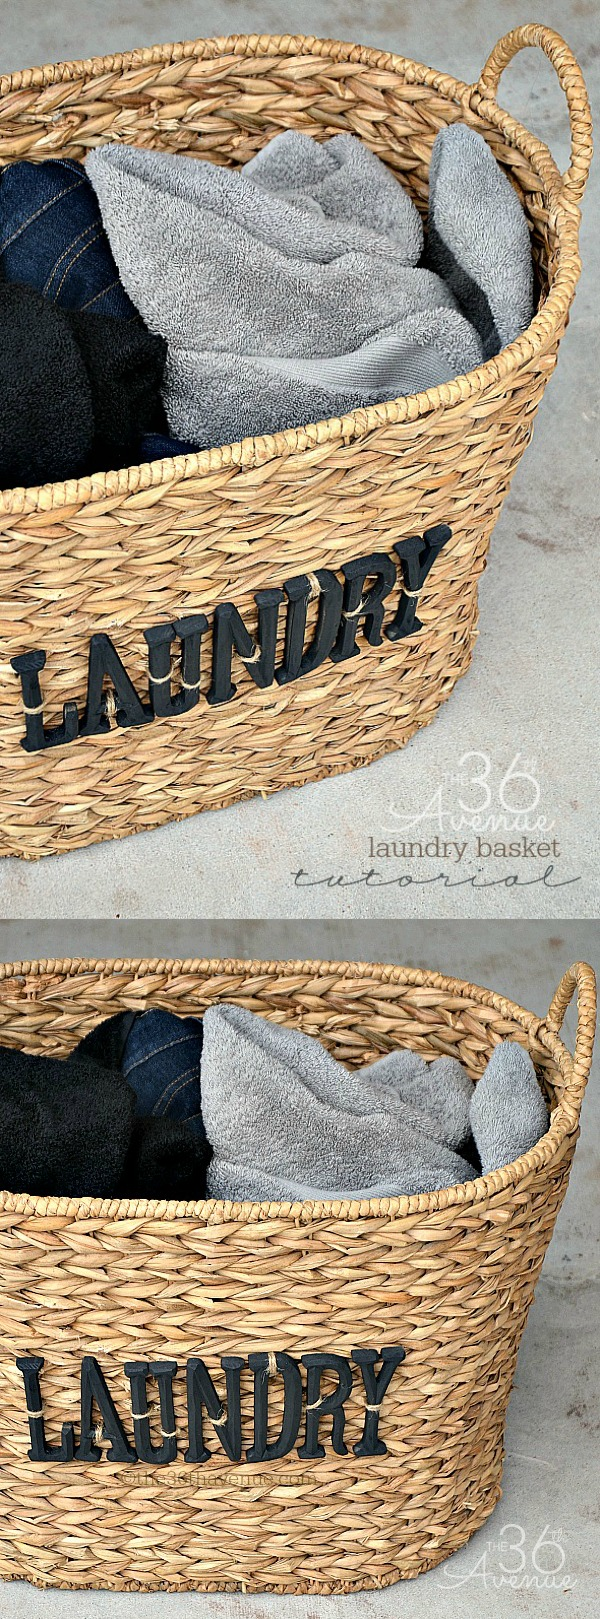 DIY Laundry Basket Tutorial at The 36th Avenue